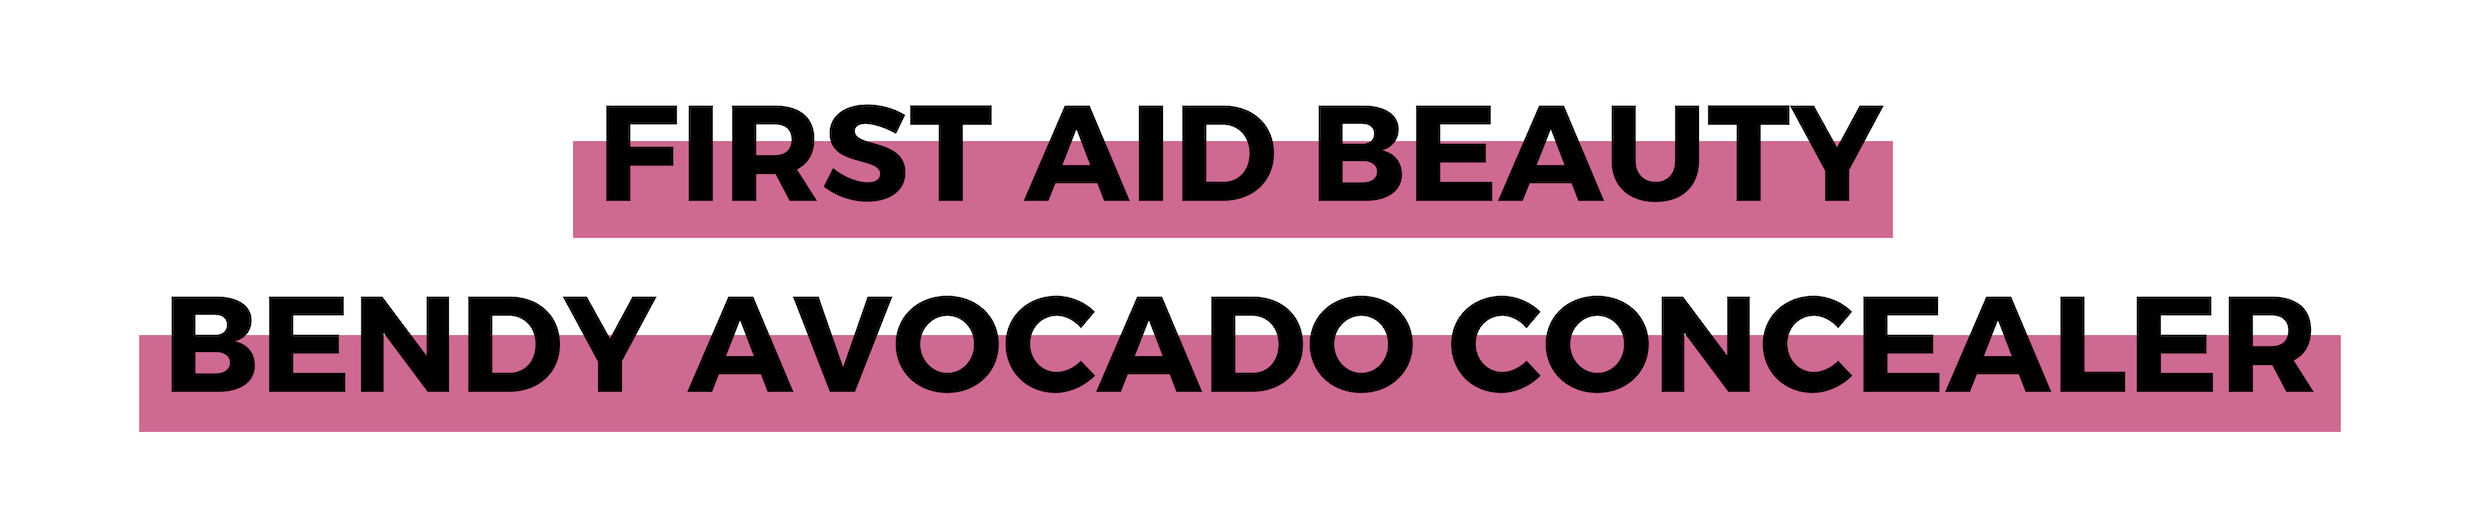 FIRST AID BEAUTY BENDY AVOCADO CONCEALER.png